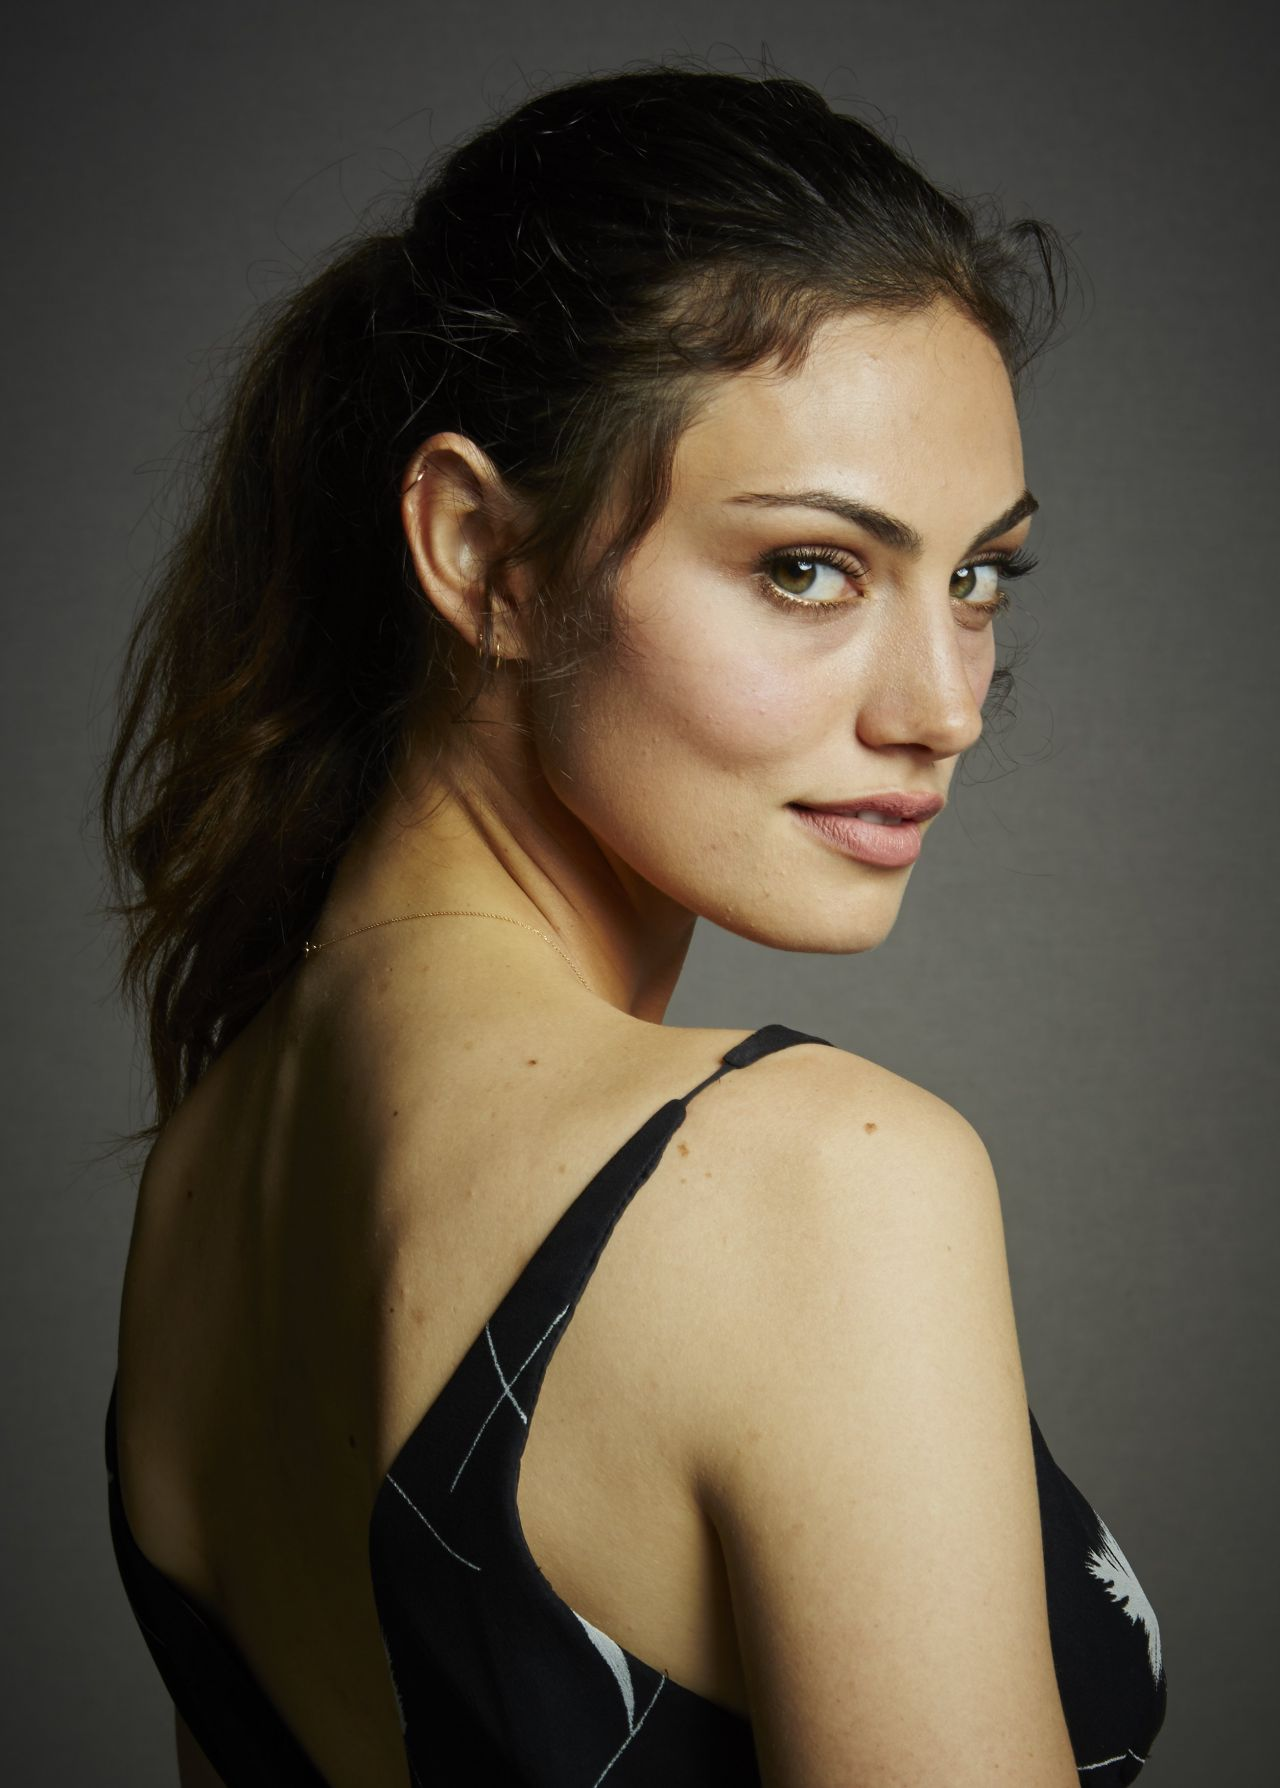 Phoebe Tonkin The Originals Portraits At Comic Con 2014